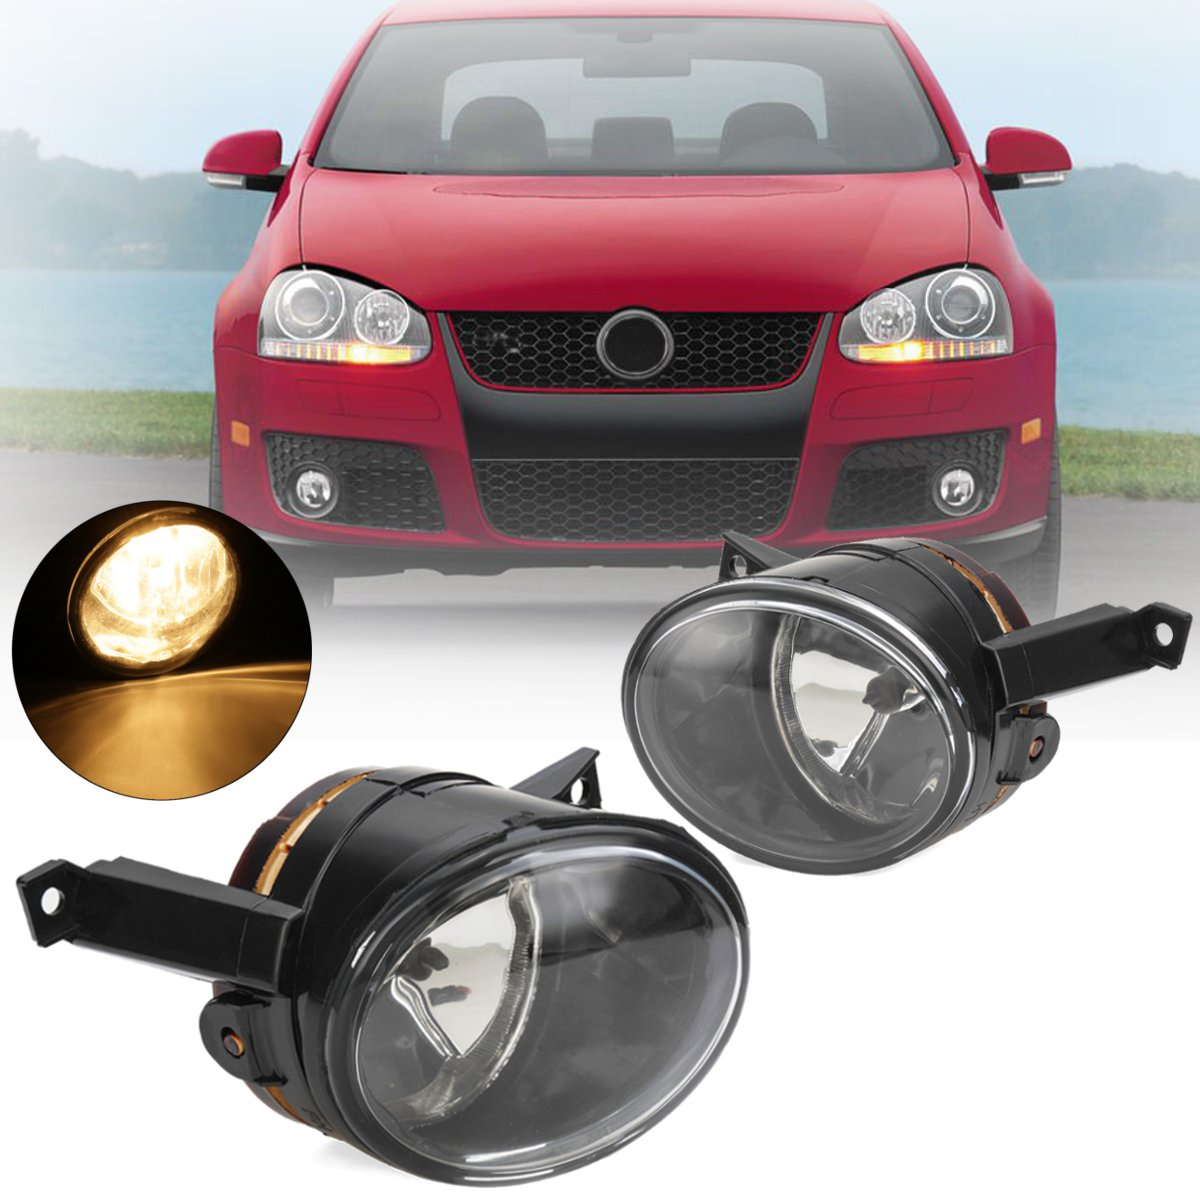 12v 55w Car Light For VW Polo Vento Sedan Saloon 2011 2012 2013 2014 2015 2016 Front Fog Light Lamp Cover Assembly 1T0 941 699C